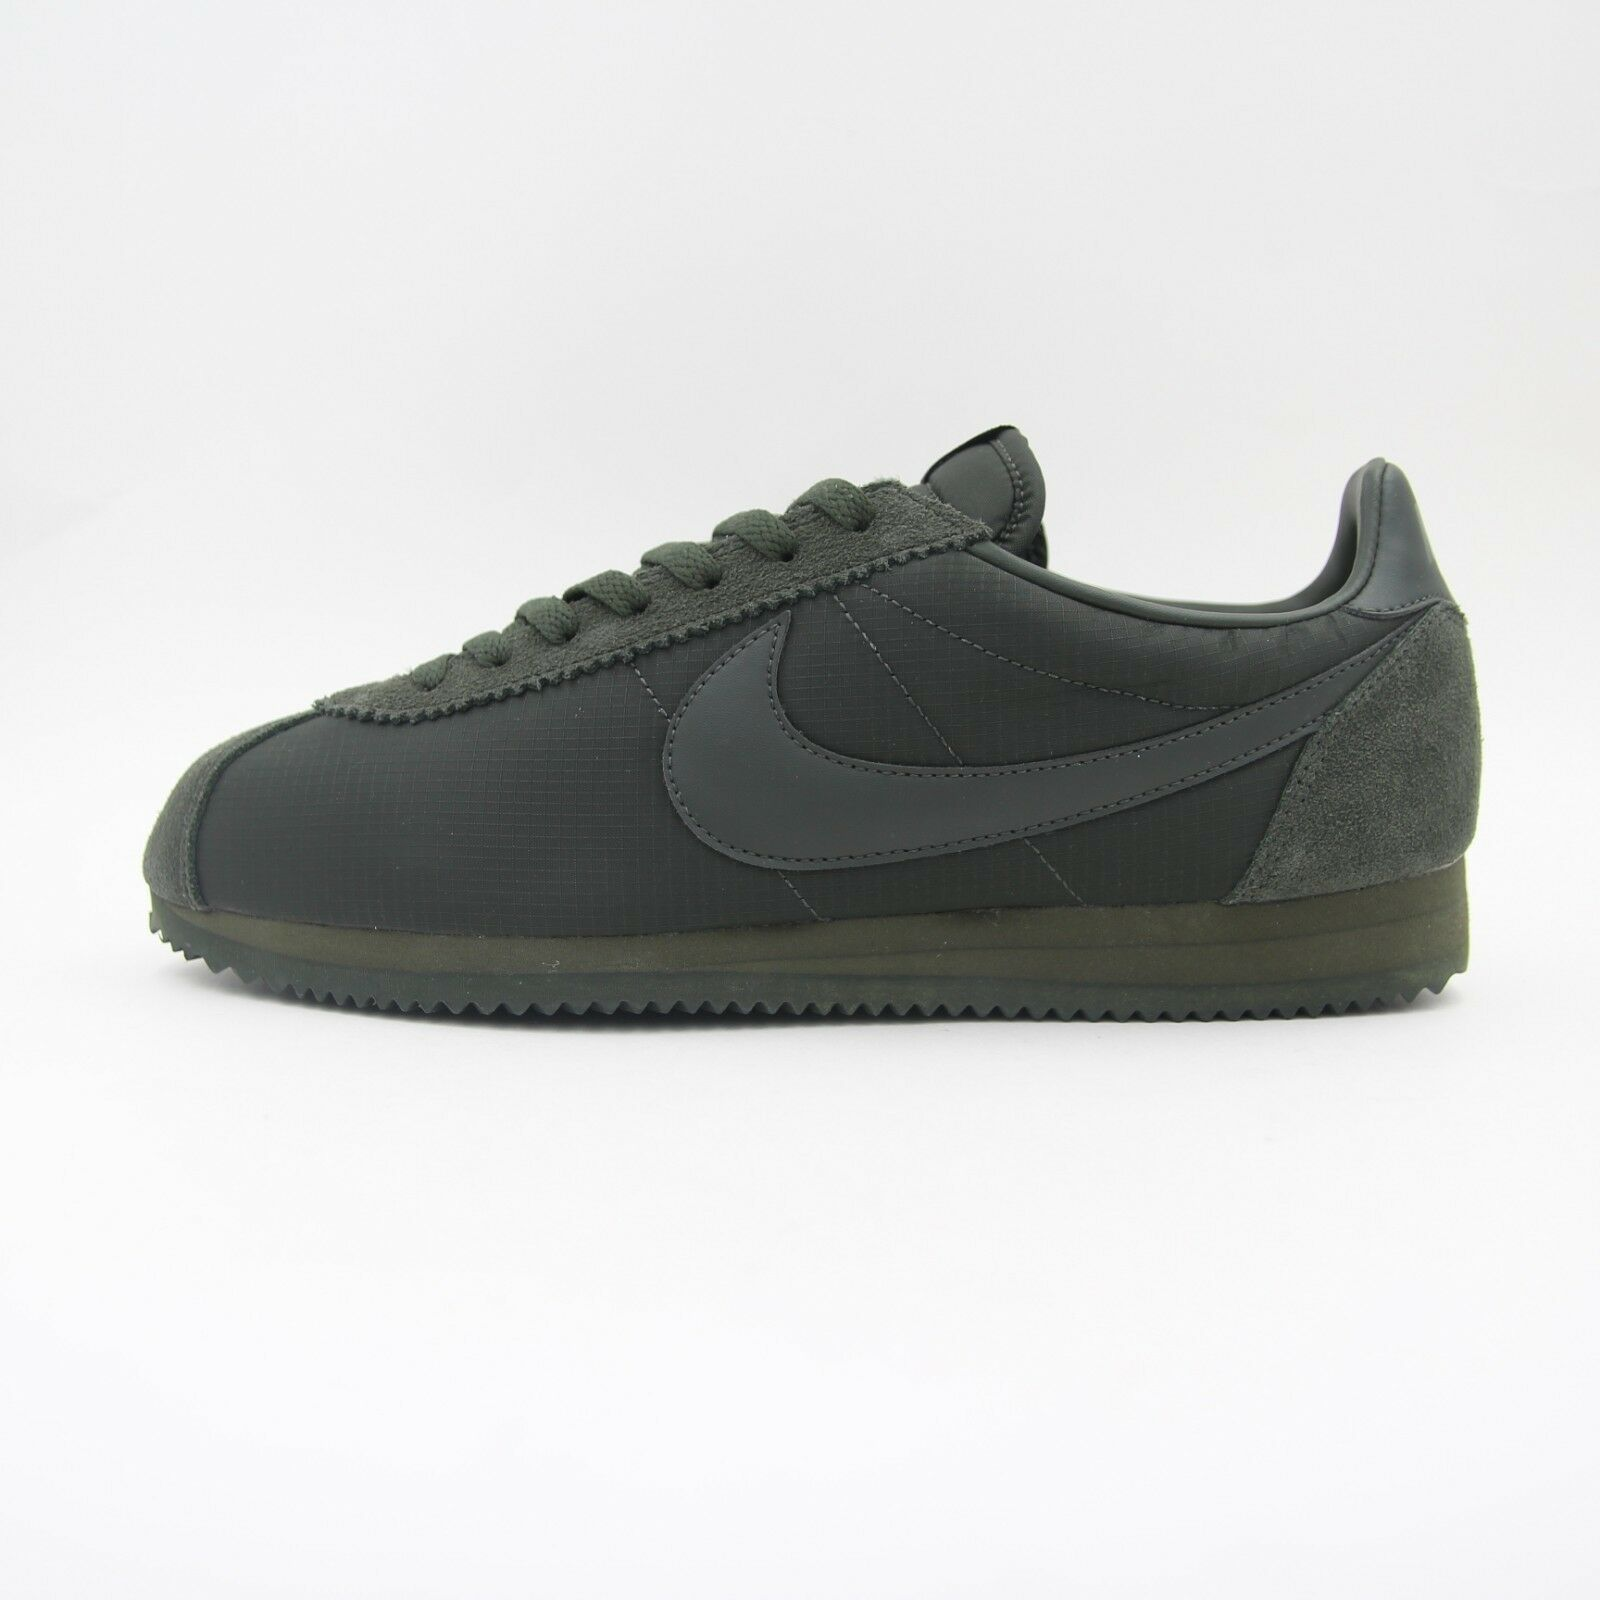 New Nylon Hommes Nike Classic Cortez Nylon New Ripstop Trainers Olive Green 10.5 807472 301 a5a7db